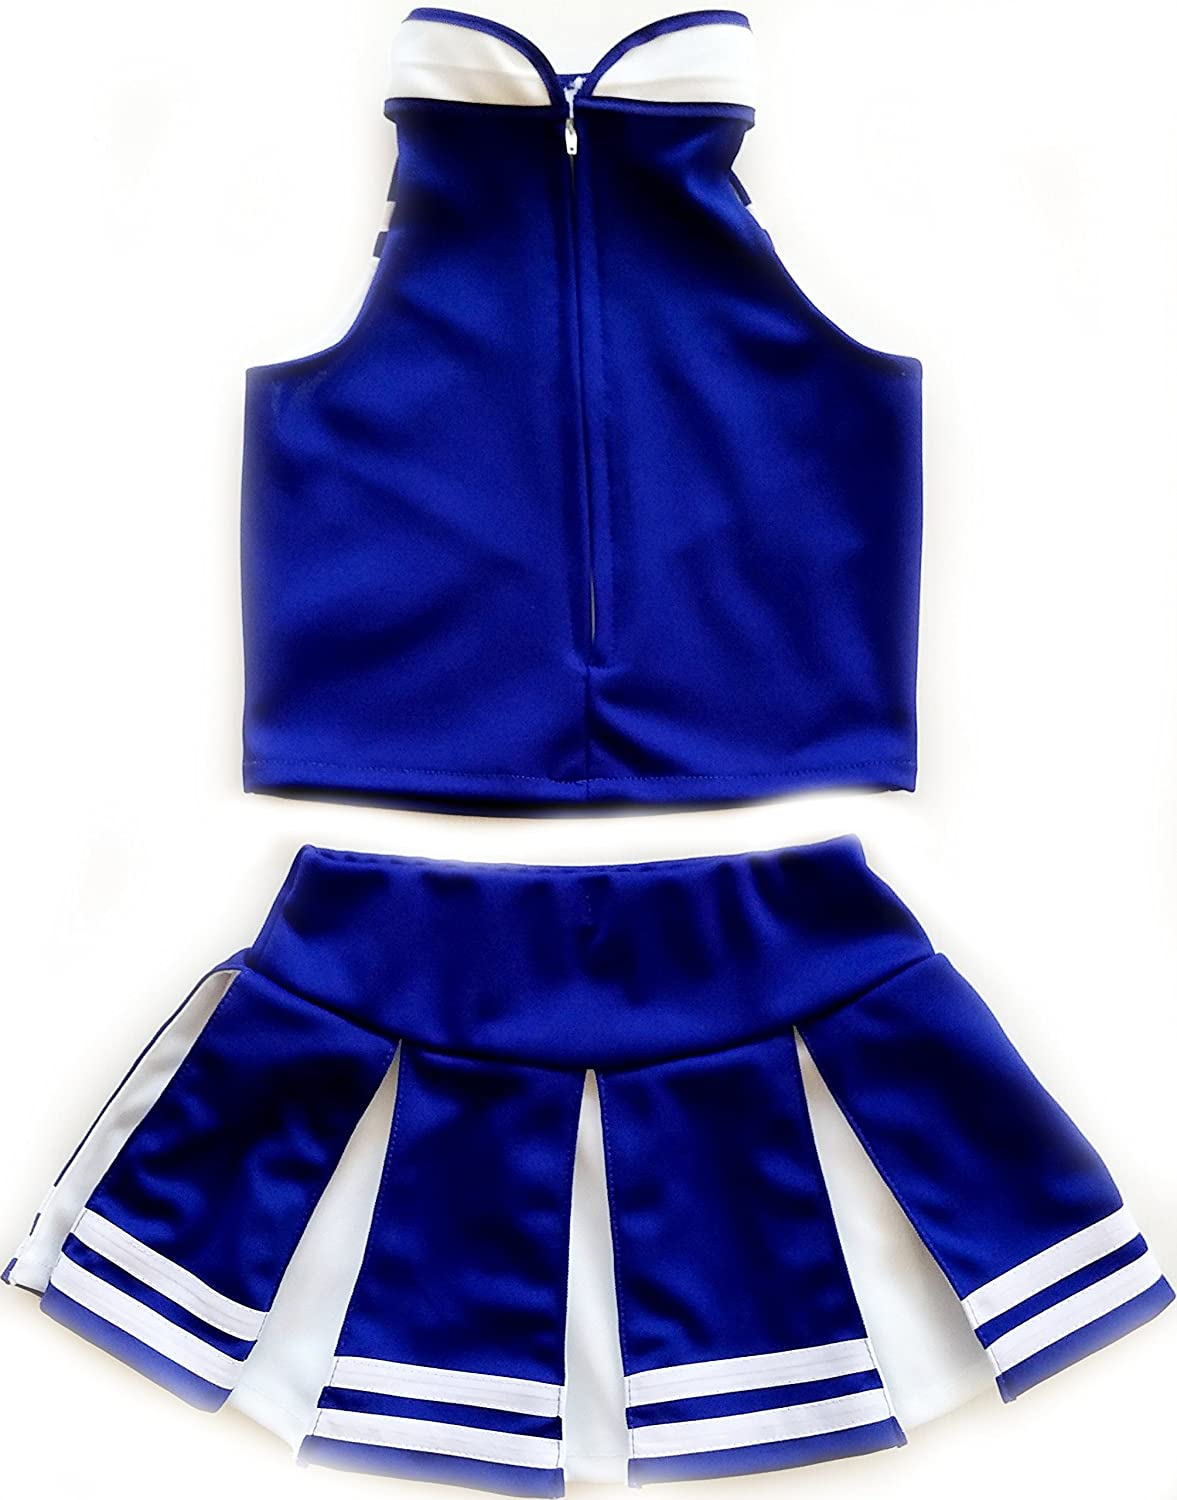 6bbf765b0 Amazon.com  Kids Girls  Cheerleader Costume Uniform Cheerleading ...